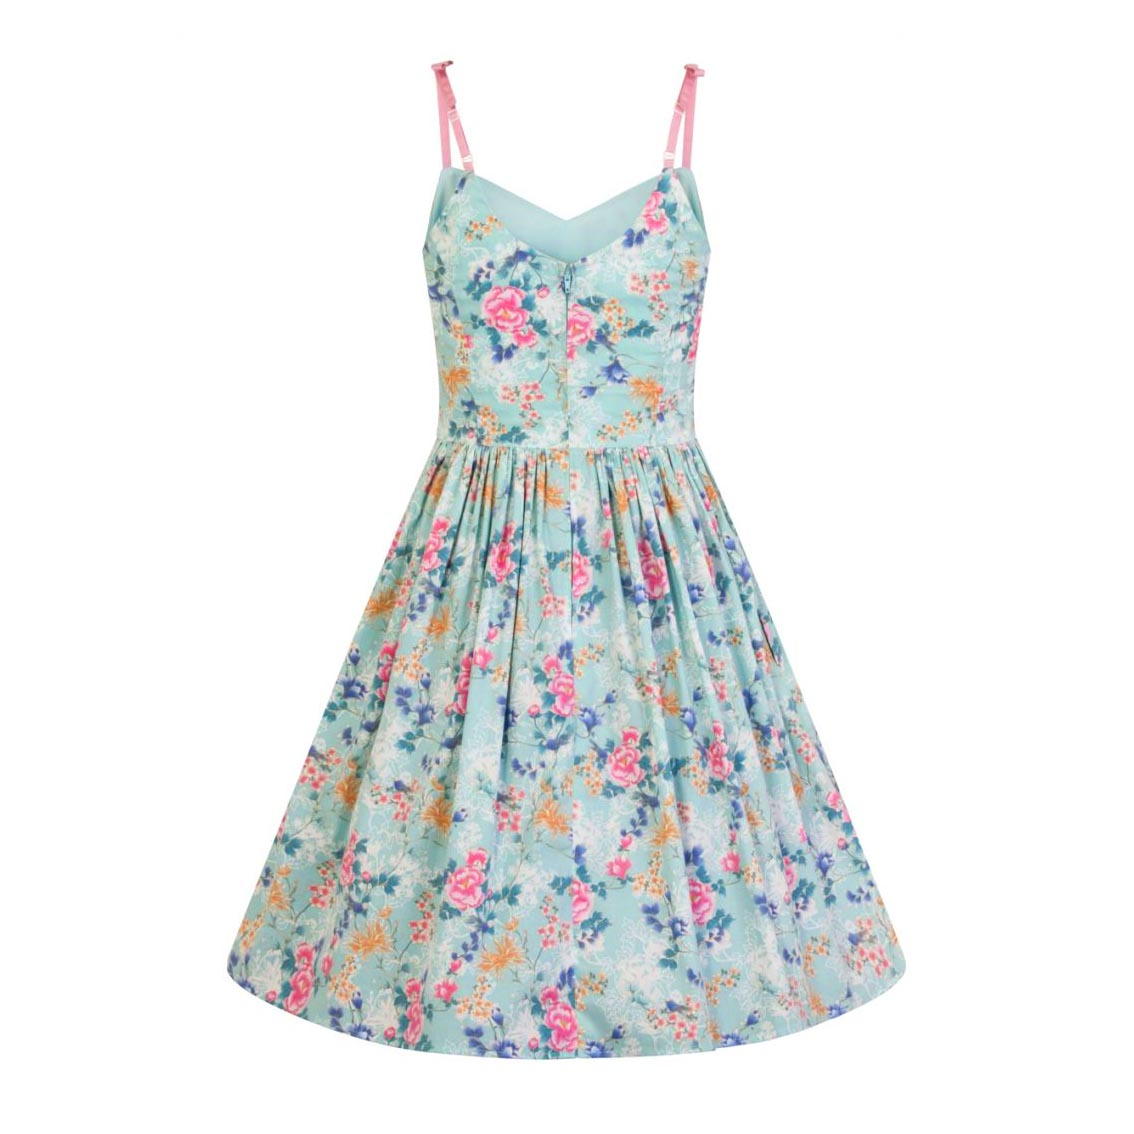 Hell-Bunny-50s-Mid-Length-Dress-Vintage-Blue-Pink-SAKURA-Flowers-Roses-All-Sizes thumbnail 25